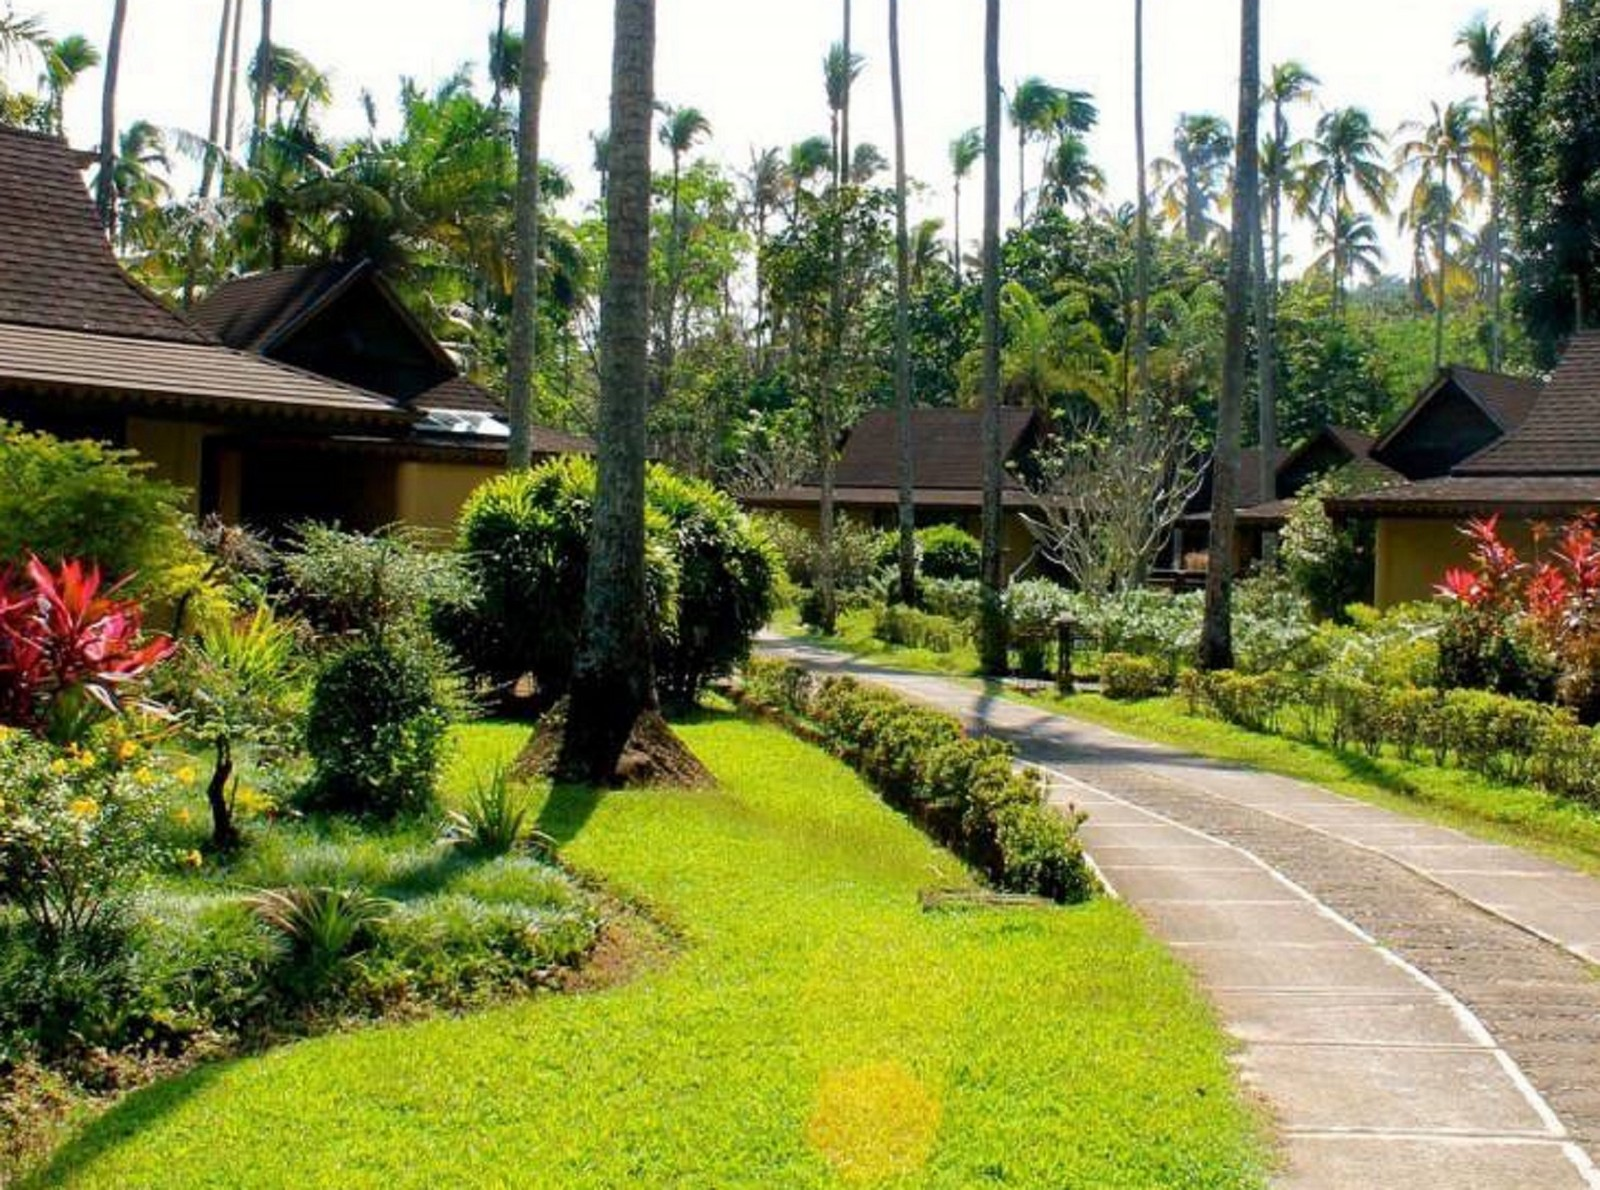 Hidden Valley Springs Resort Laguna Day Tour | With Food and Transfers from Manila